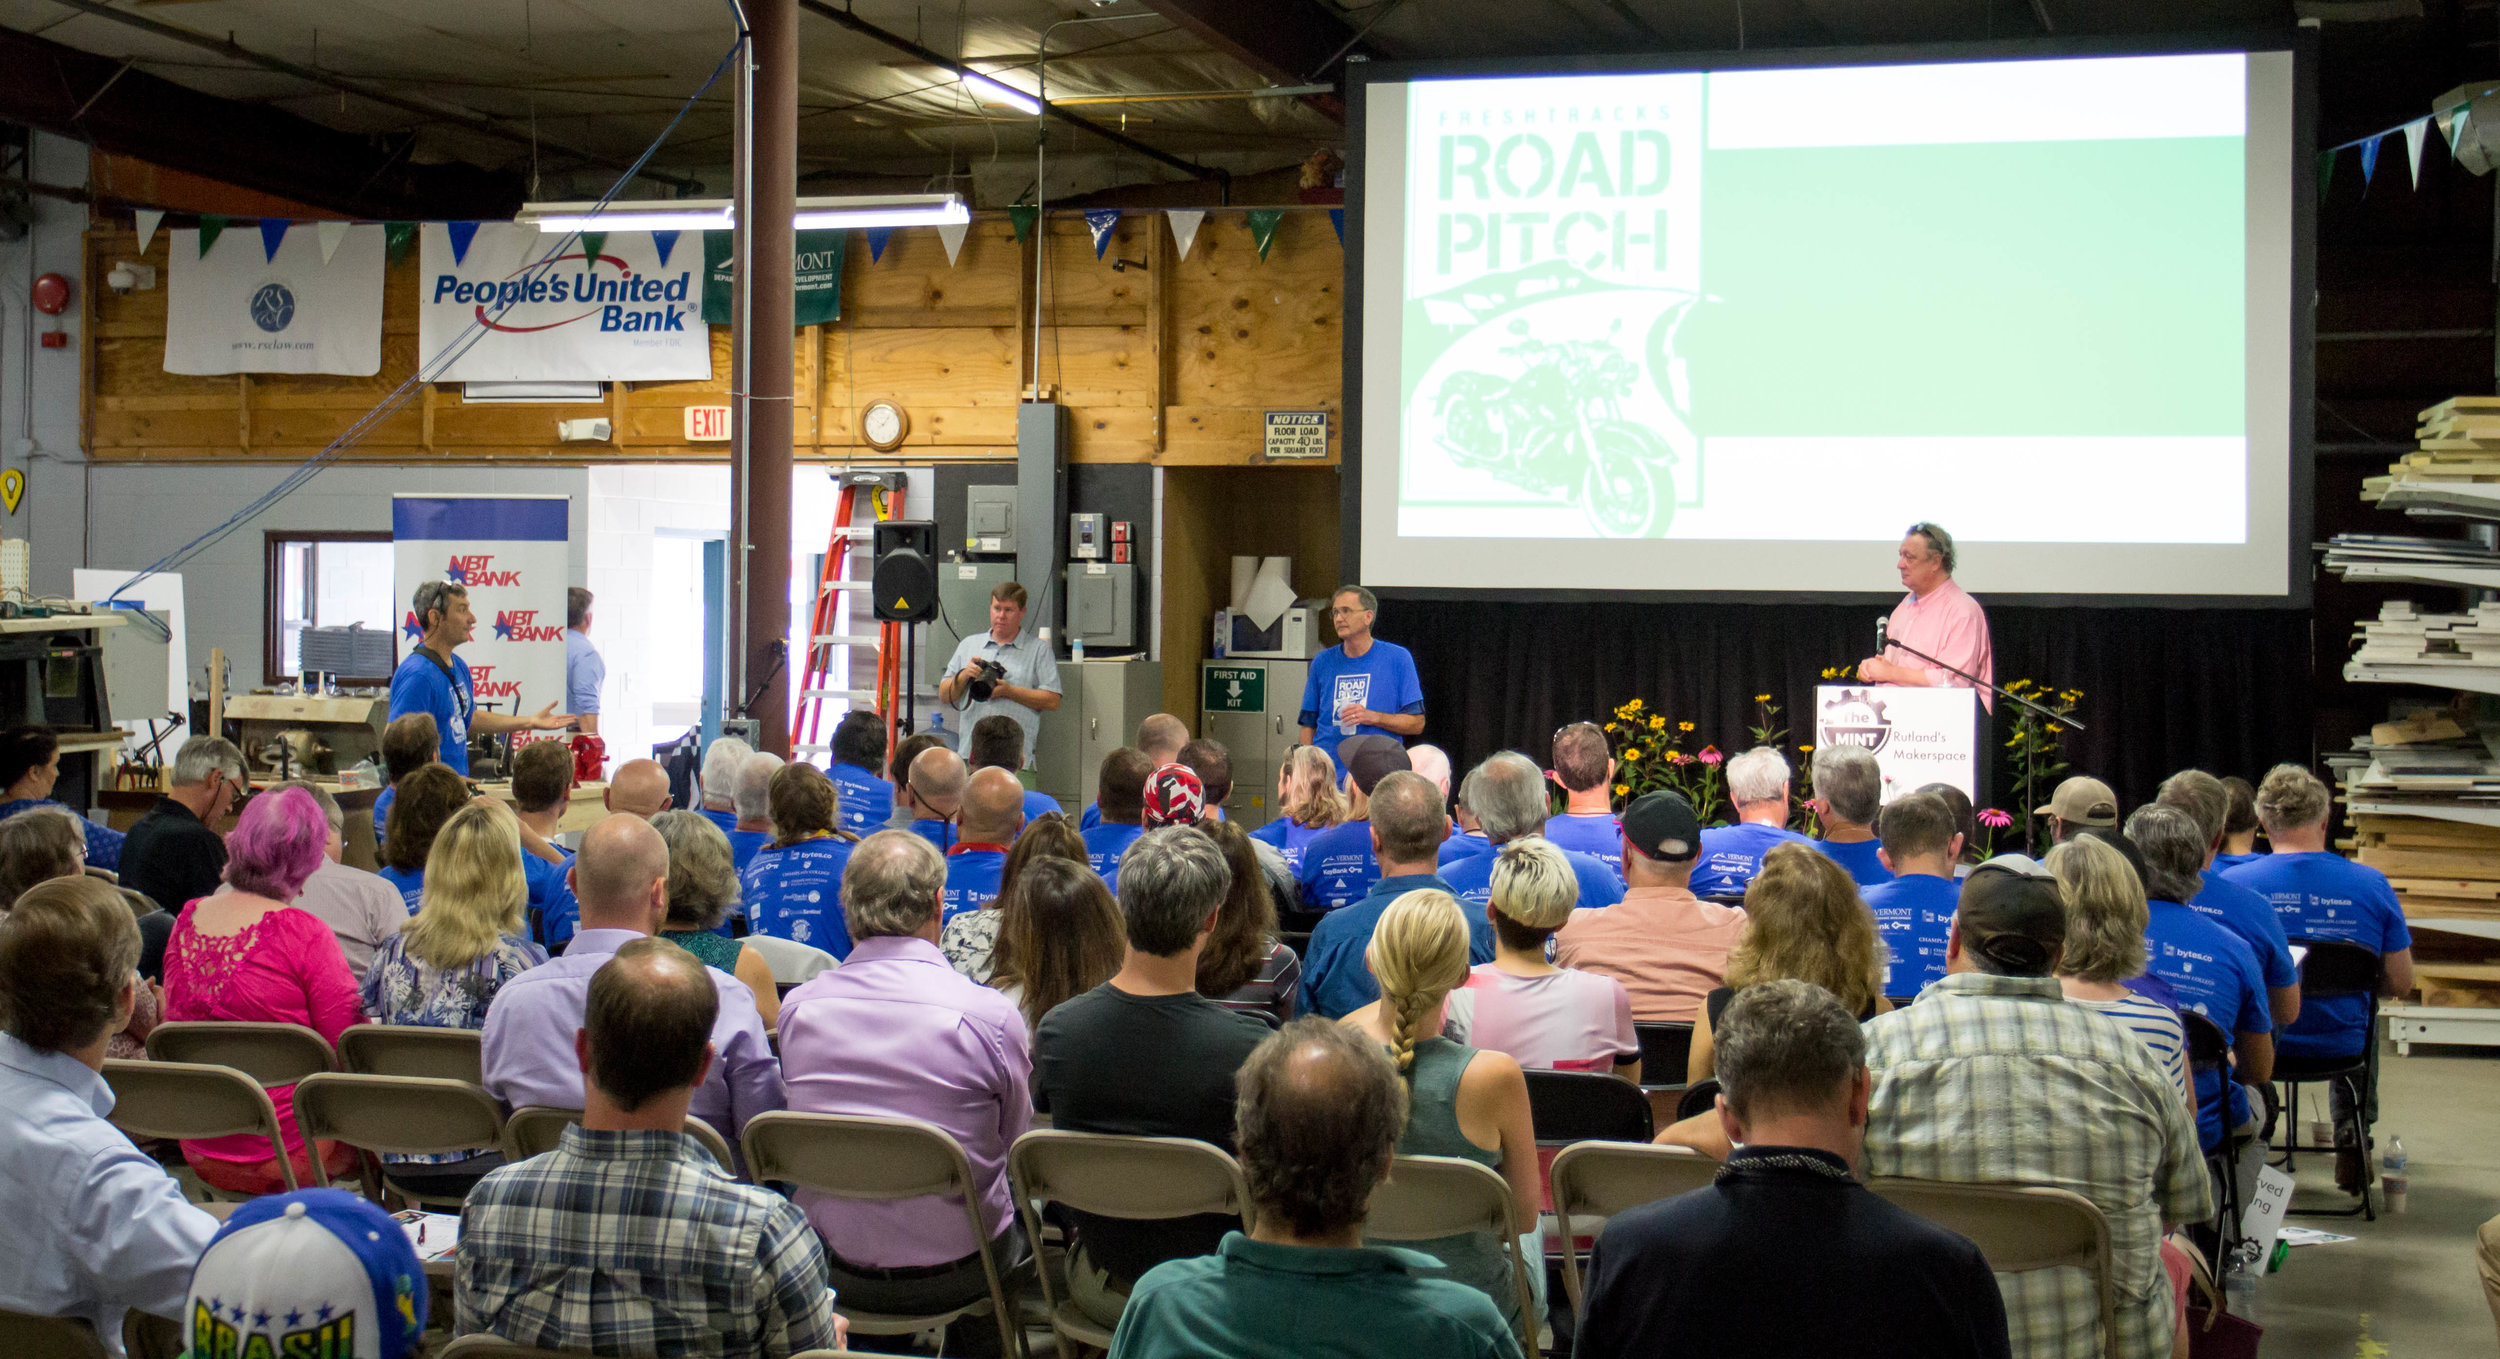 Francois Gossieaux, founder of Local Captures, answers questions from the audience during Road Pitch.